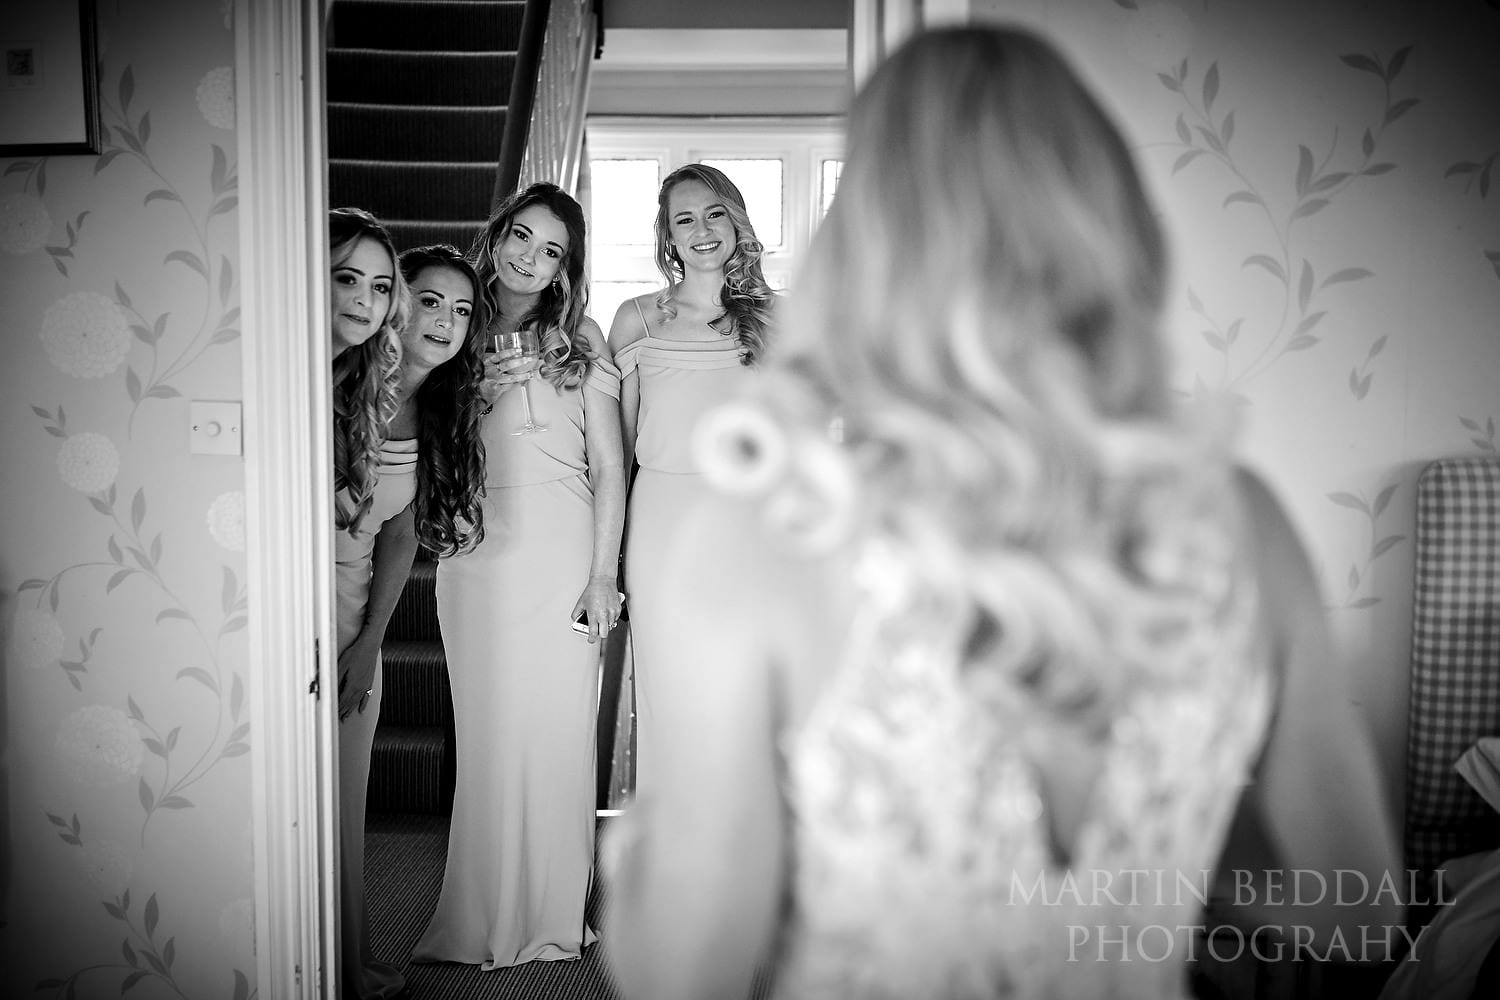 Bridesmaids see the bride in her wedding dress